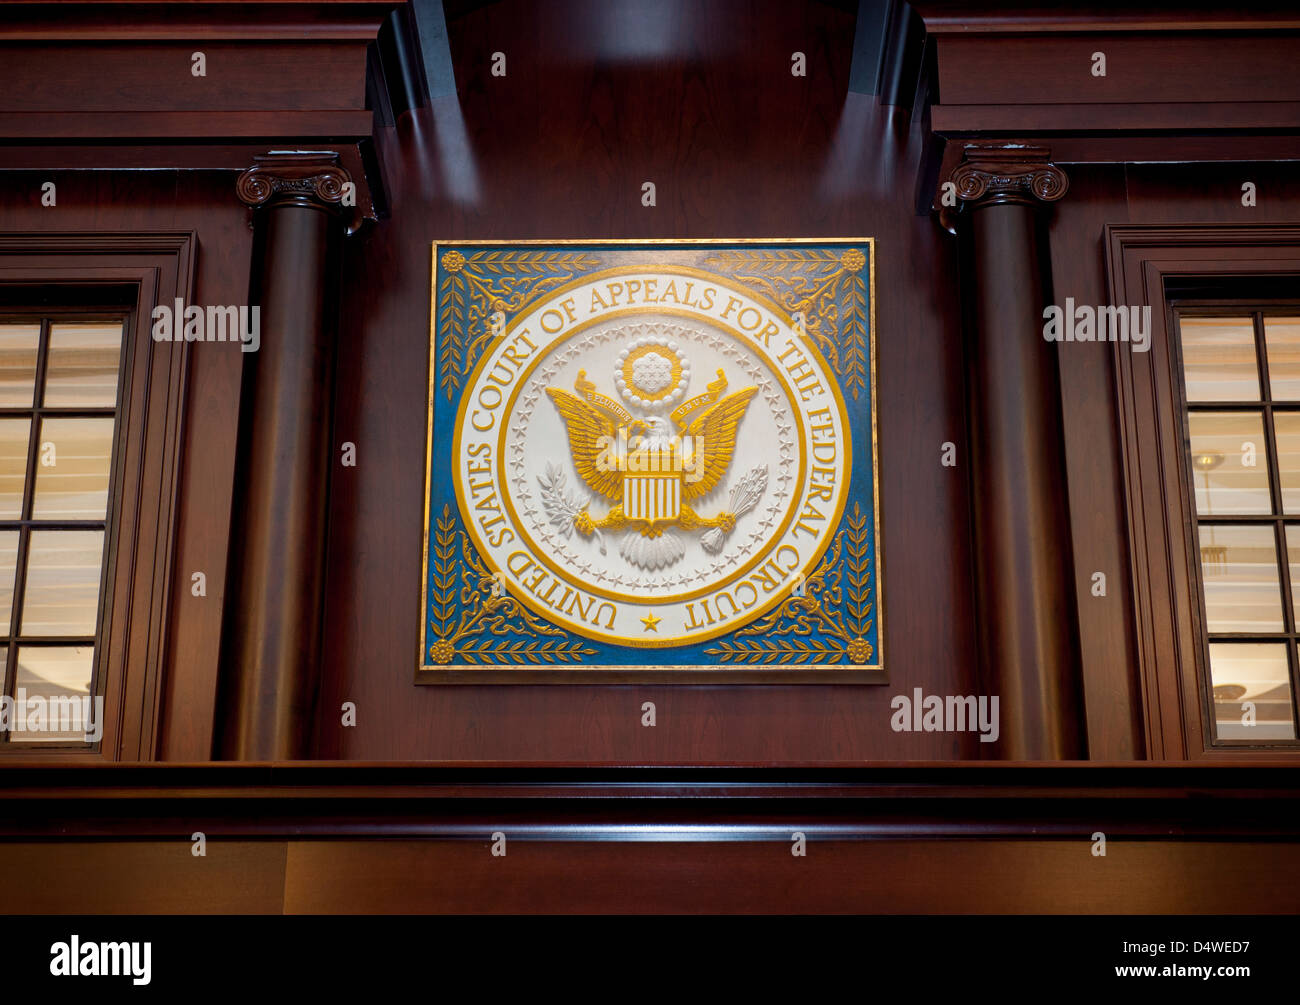 Seal of the United States Federal Court of Appeals inside a courtroom in Washington DC - Stock Image